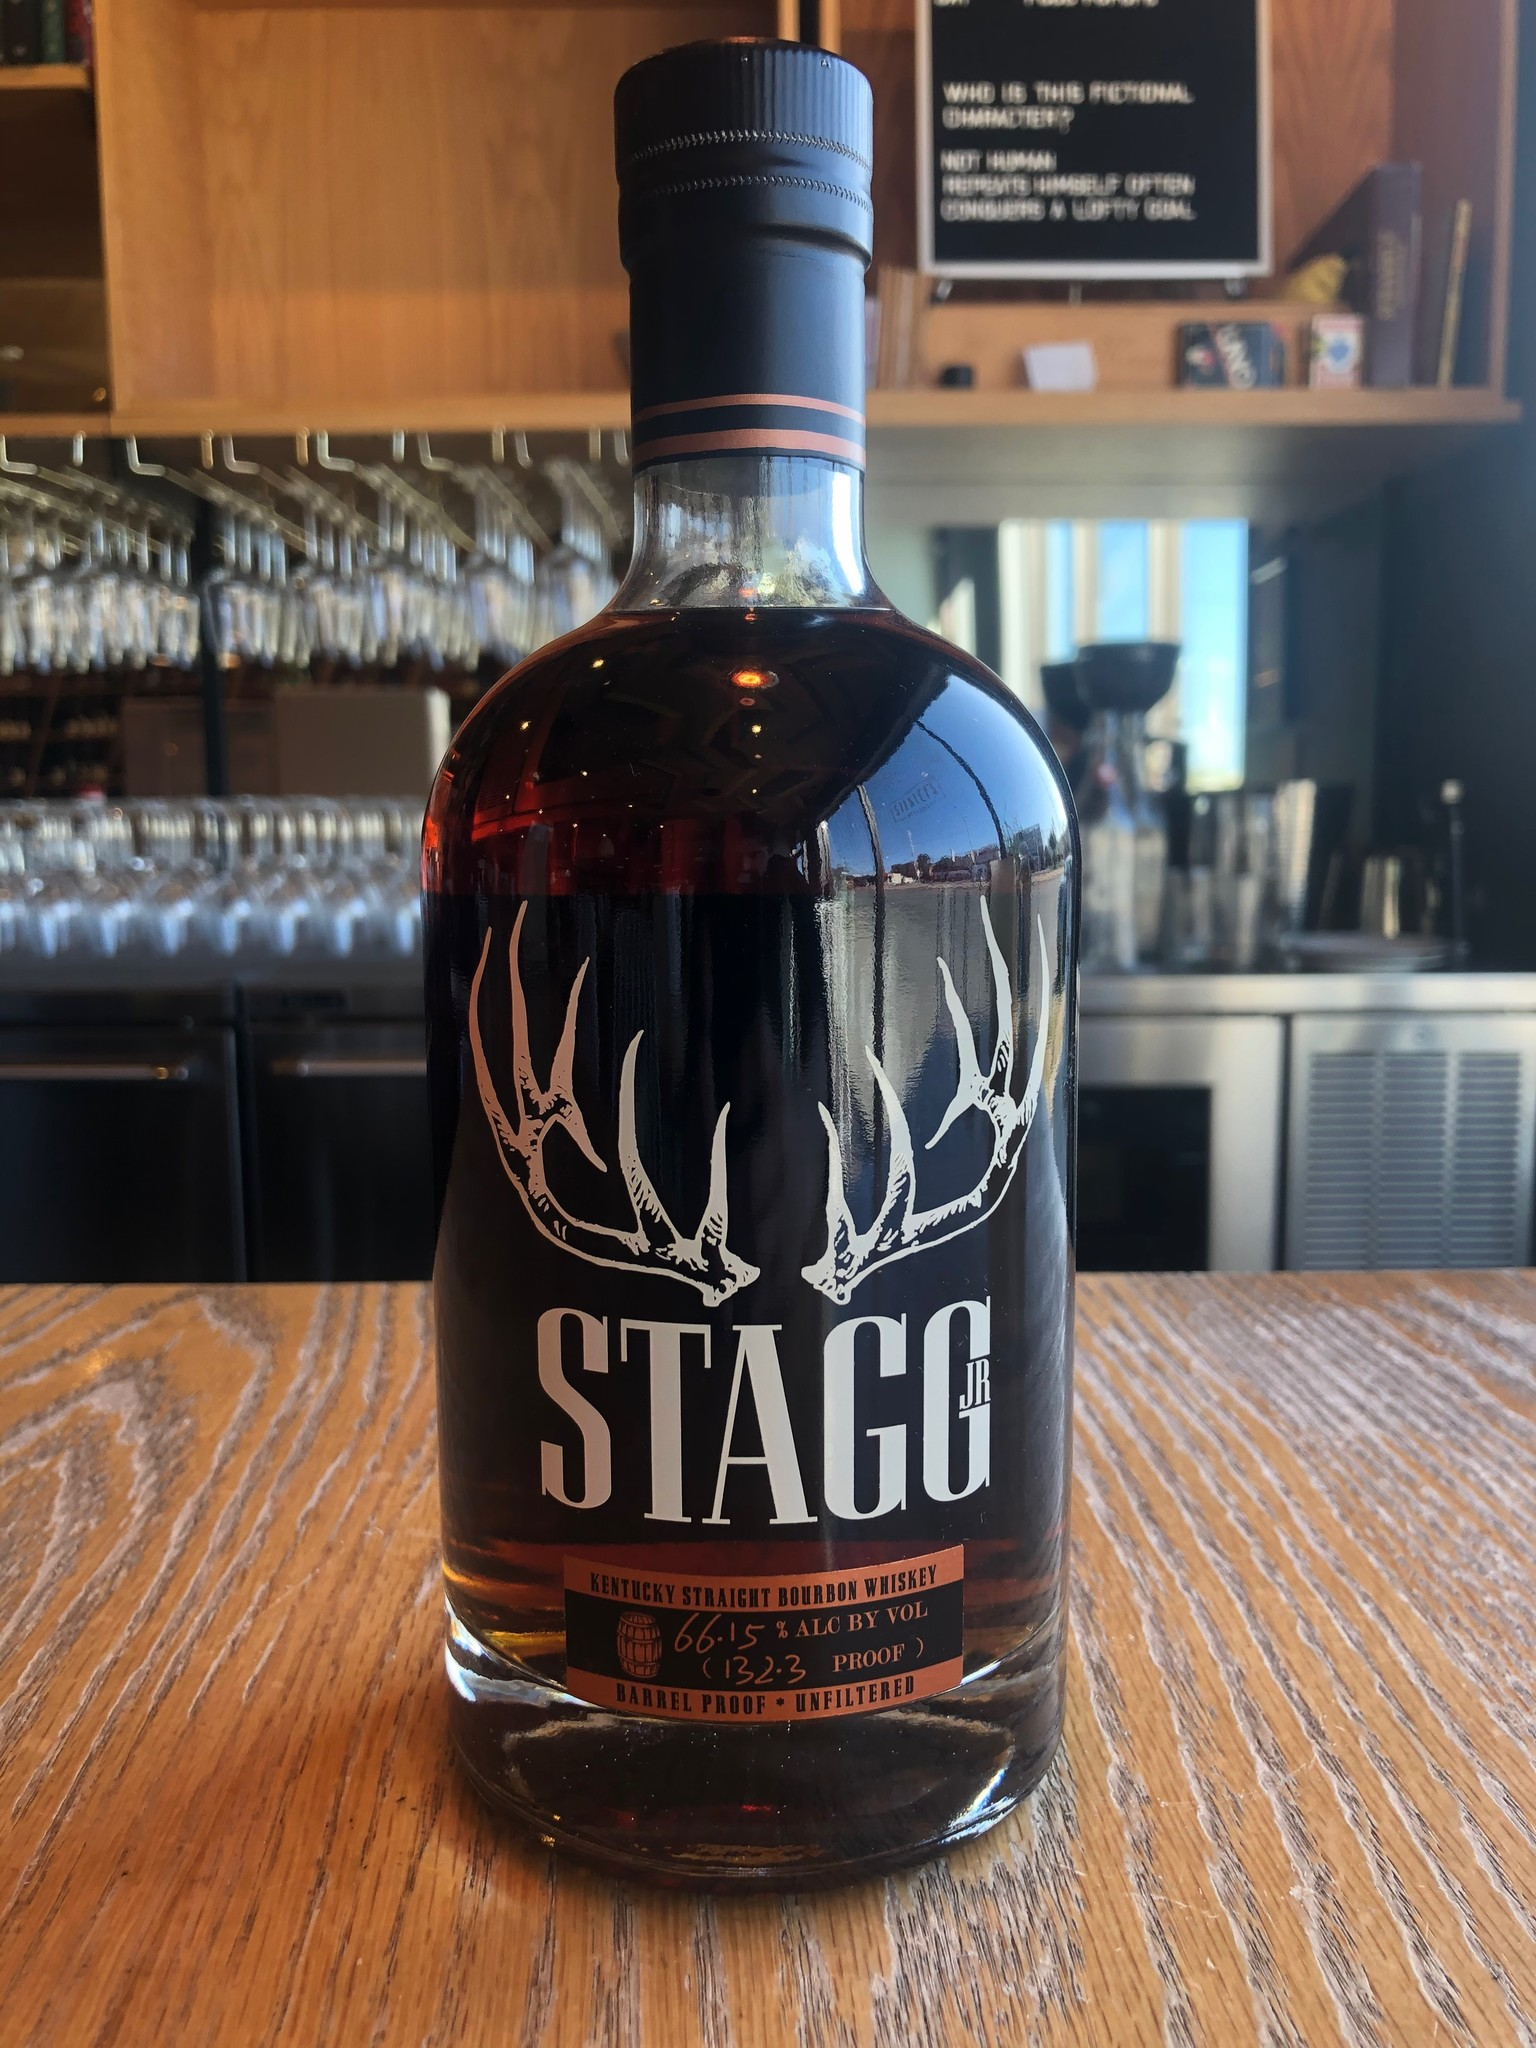 Buffalo Trace Distillery George T. Stagg Jr. Barrel Proof Boubon